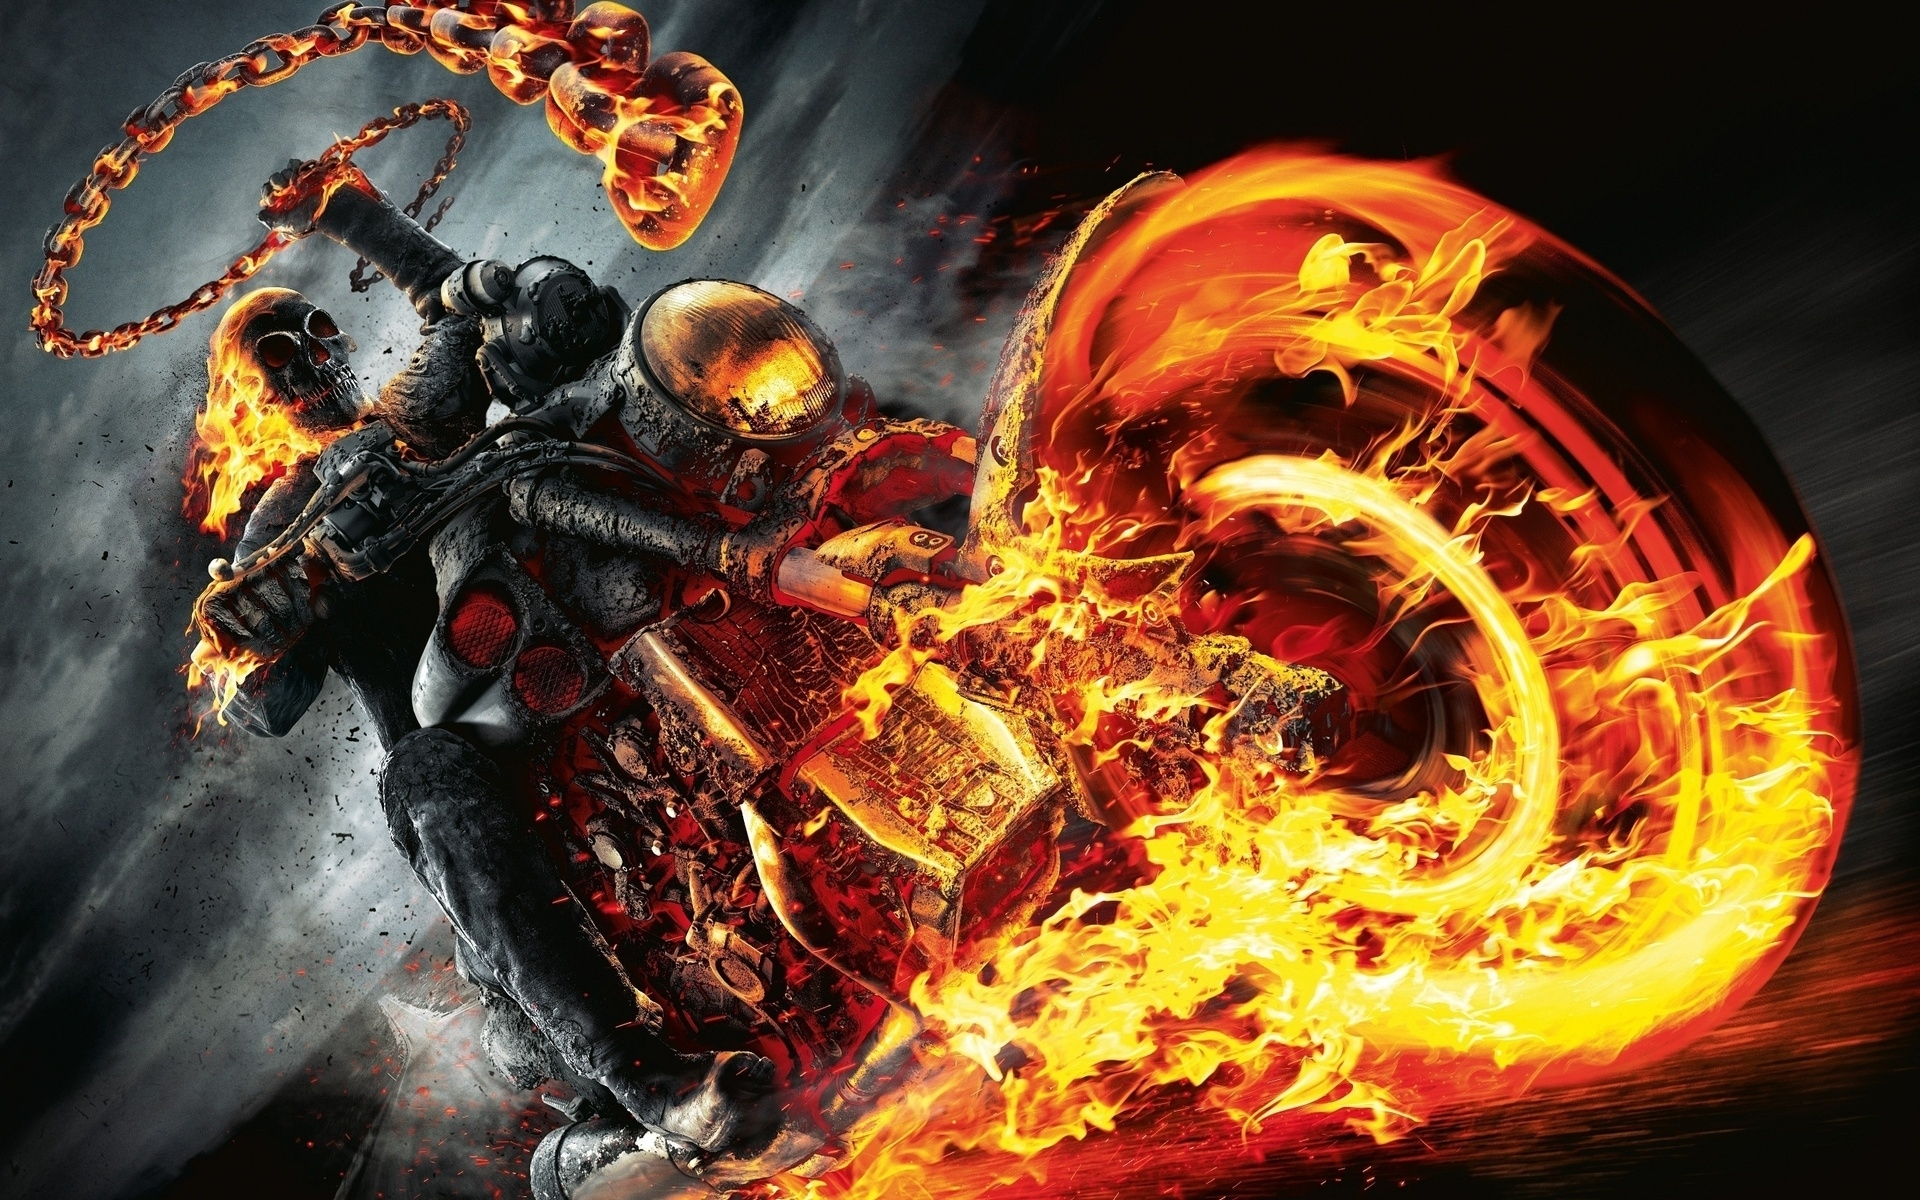 29 ghost rider: spirit of vengeance hd wallpapers | background